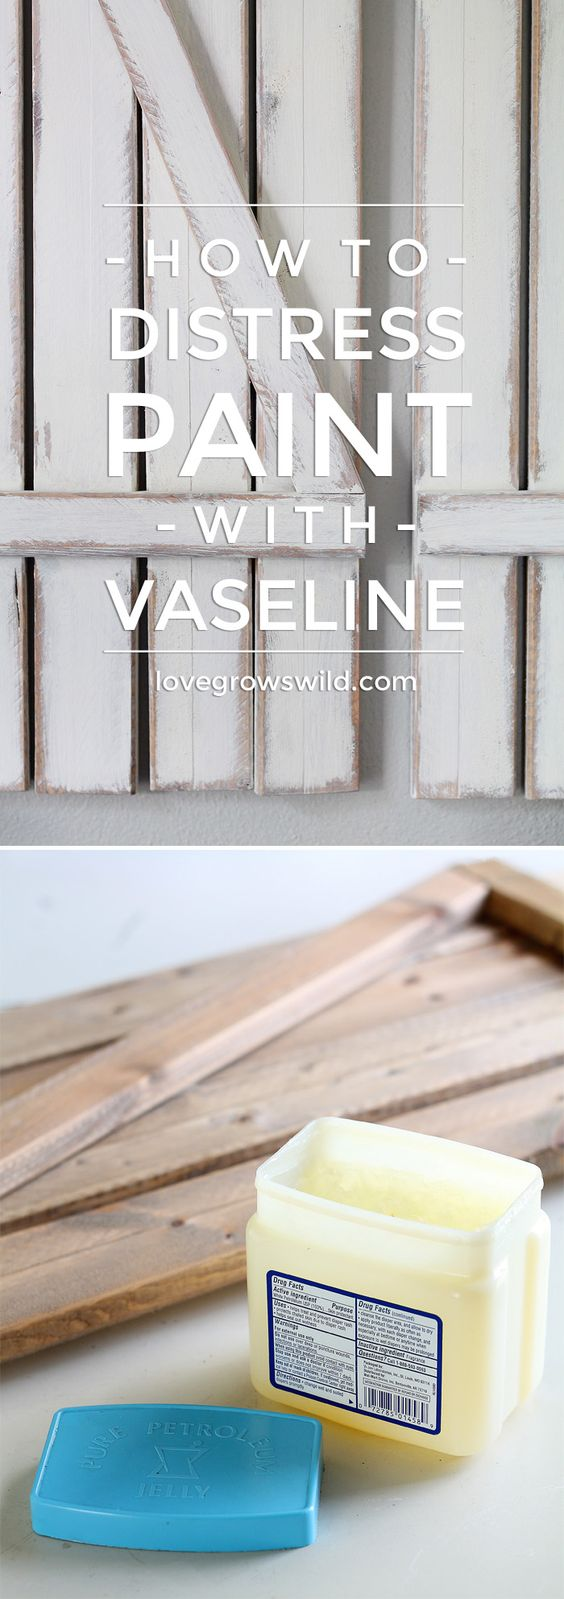 How to distress paint the easy way using vaseline.